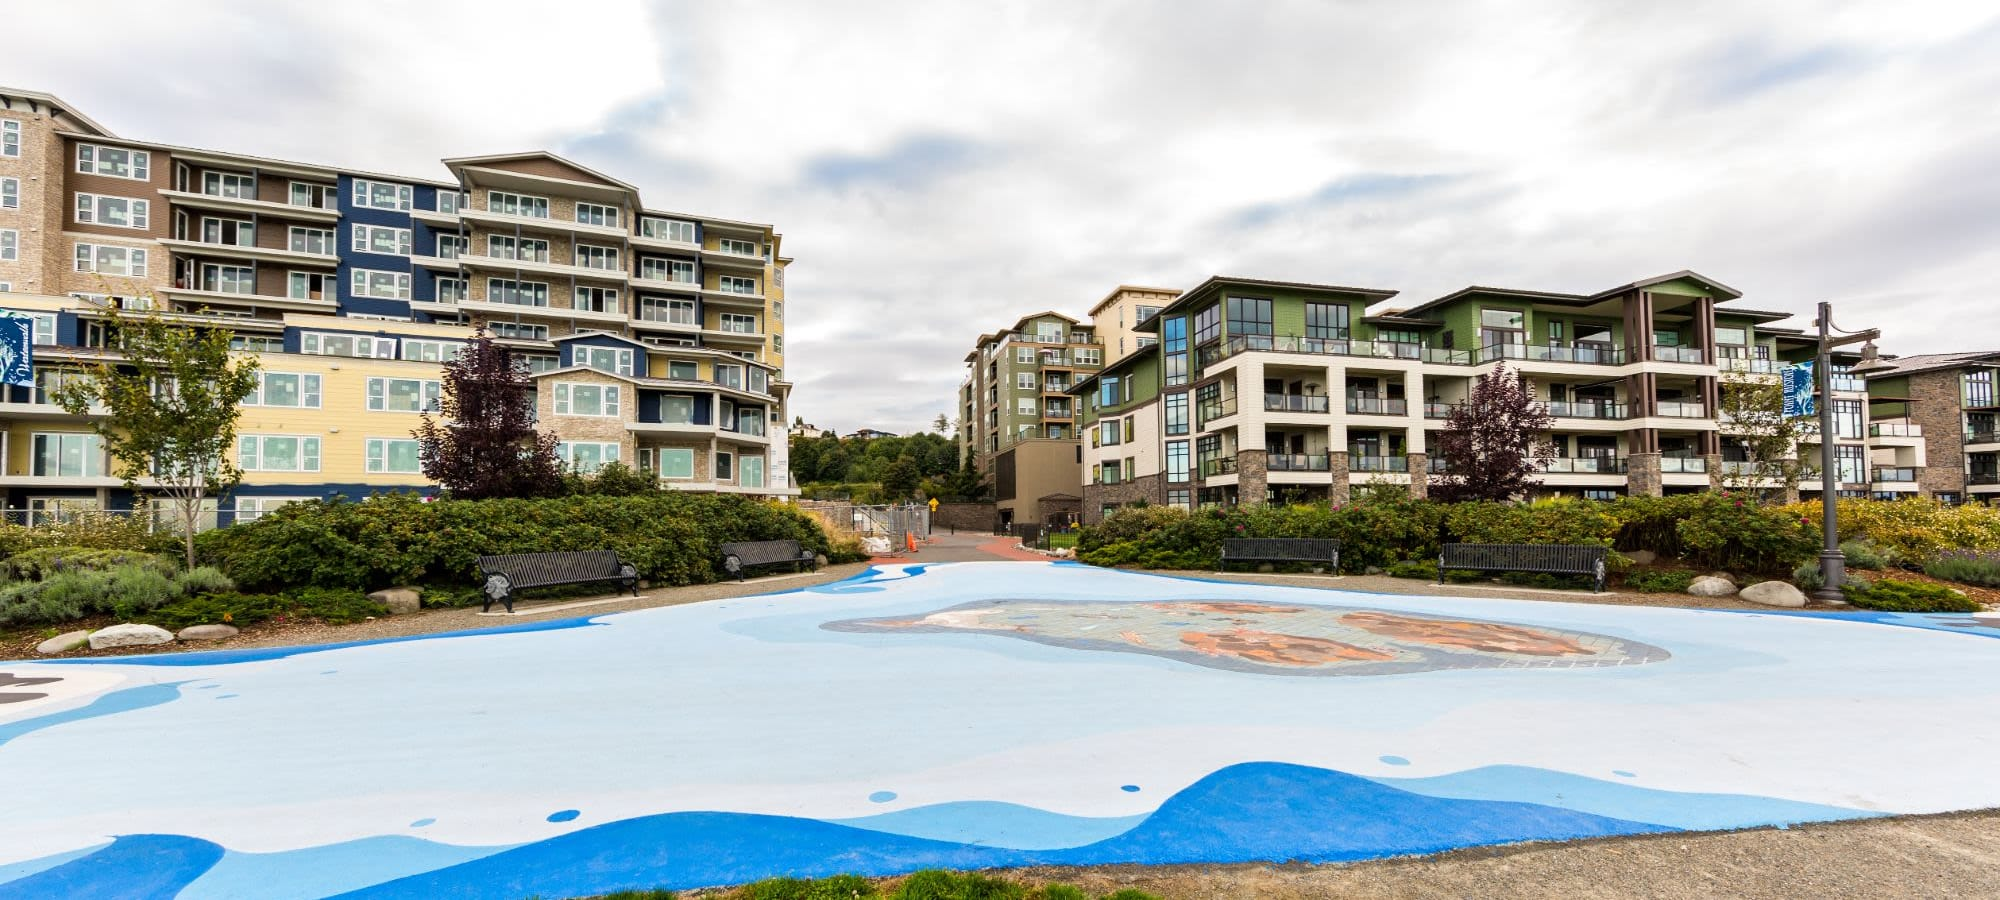 Amenities at Copperline at Point Ruston in Tacoma, Washington